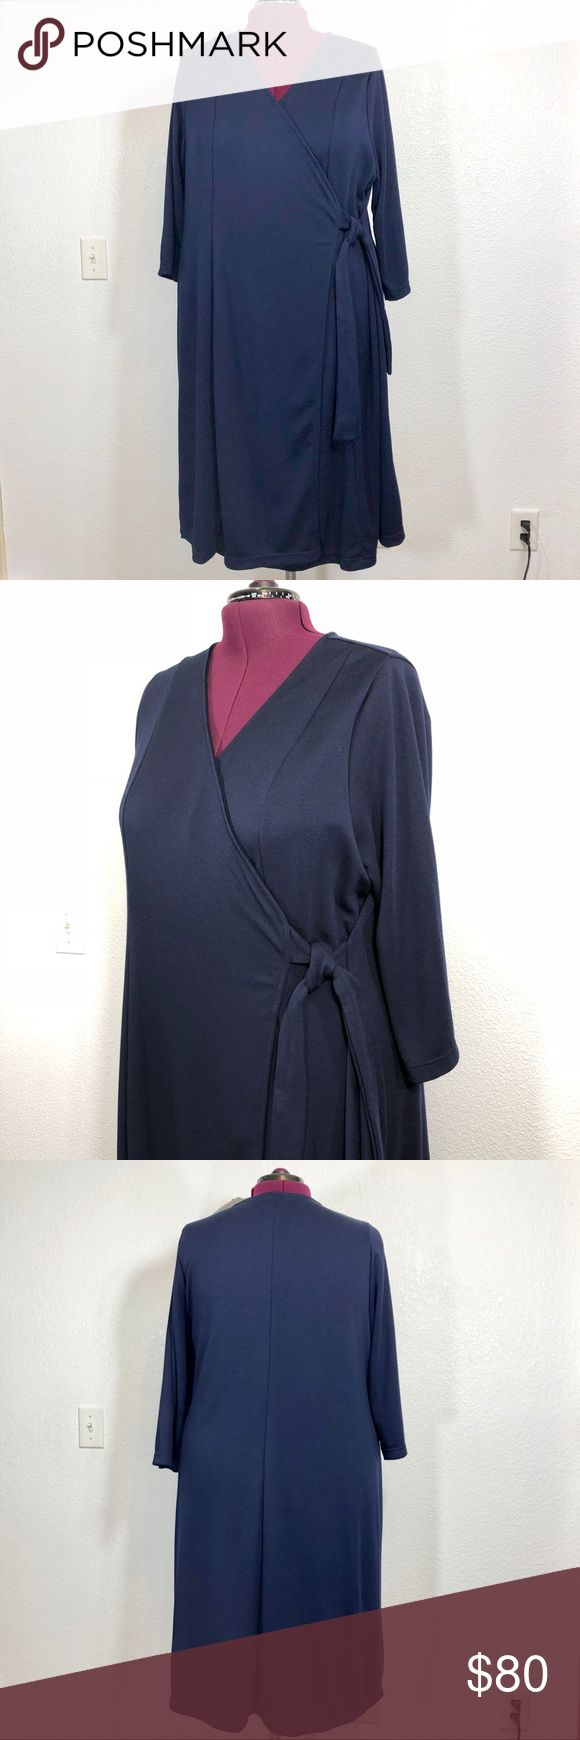 PLUS Igigi Wrap Blue Dress New with tags classic beautiful and comfortable high quality wrap dress by Igigi.  63% polyester, 32% viscose 5% elastane.   Length approximately 45 inches measured in the back.  Size 22/24.  Made in USA. Igigi Dresses